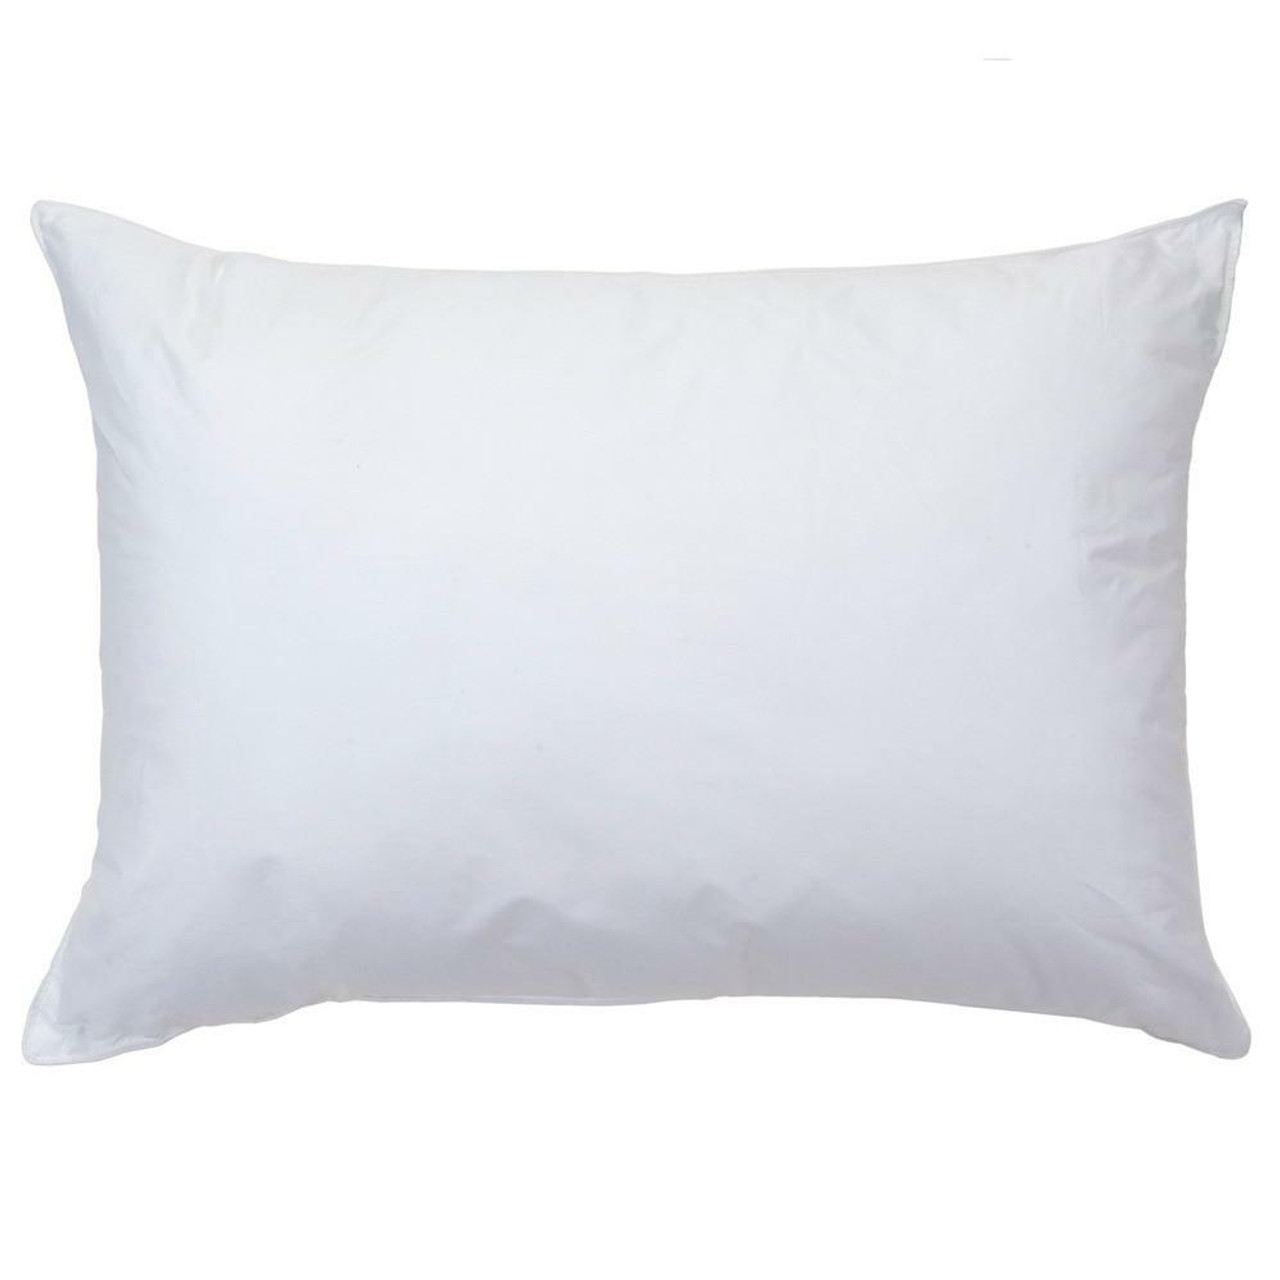 WestPoint Hospitality by Martex MARTEX or ULTRA TOUCH PILLOW or STANDARD or 100percent POLYESTER or 12 PER CASE